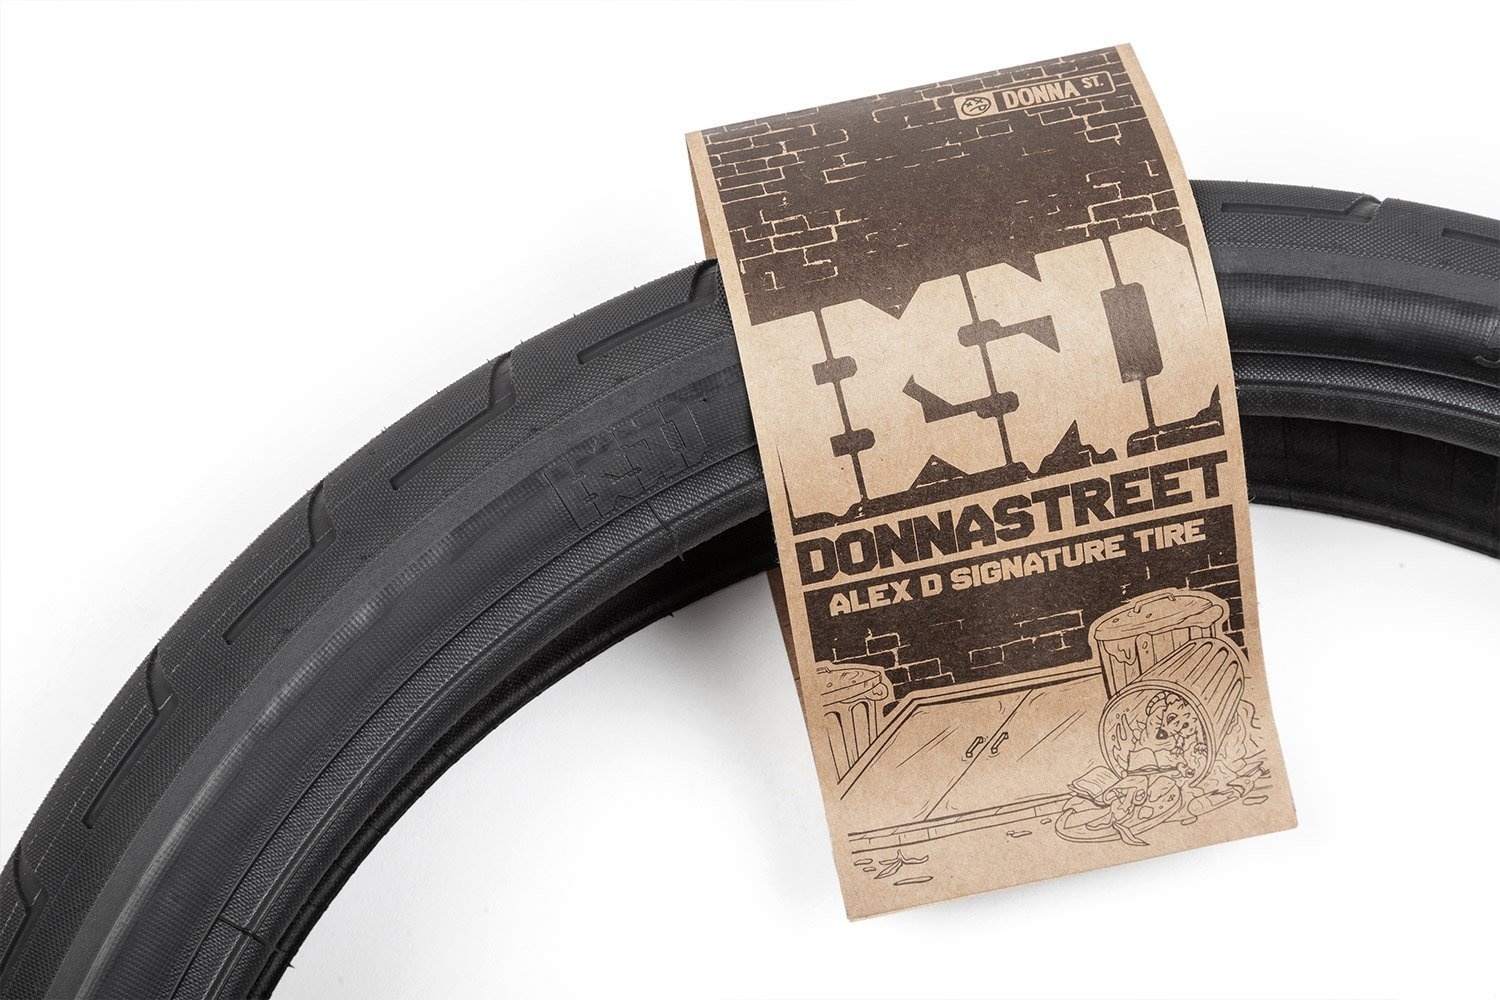 BSD BSD Donnastreet Tire - 20 x 2.3, Clincher, Wire, Black